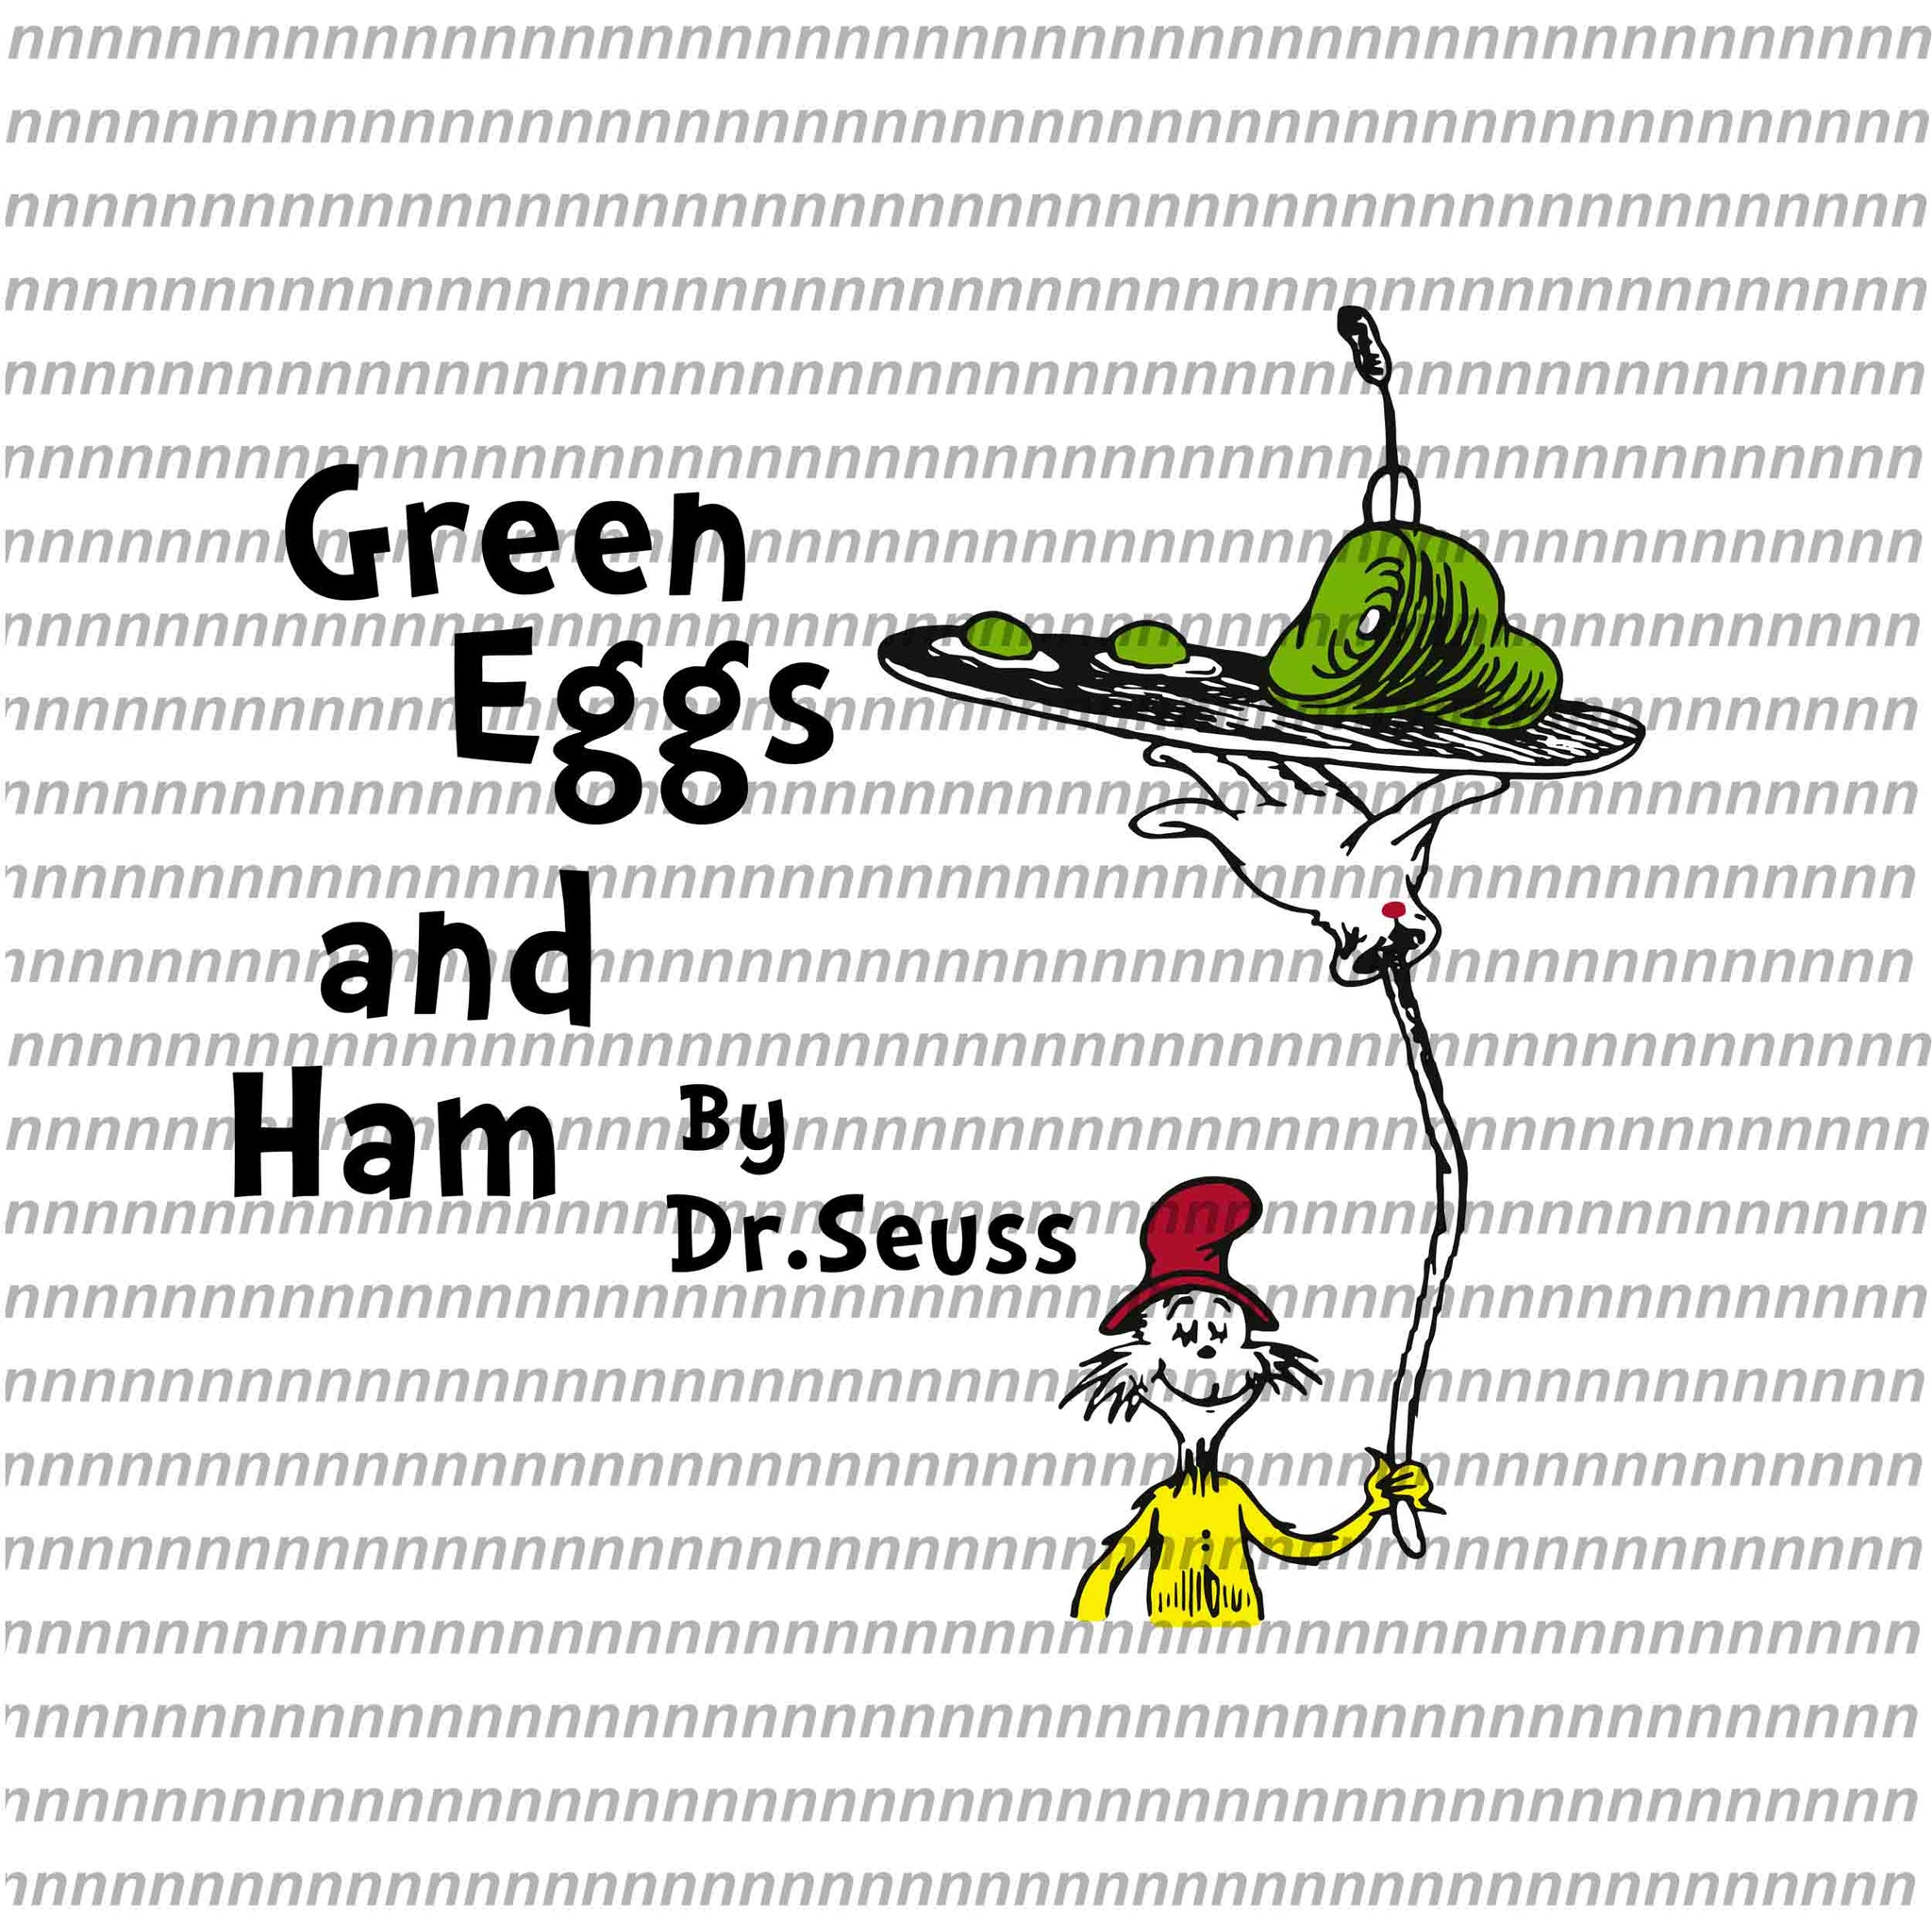 Green eggs and ham by dr.seuss,Dr Seuss svg, Dr Seuss vector,Dr Seuss quote, Dr Seuss design, Cat in the hat svg, thing 1 thing 2 thing 3, svg, png, dxf, eps file